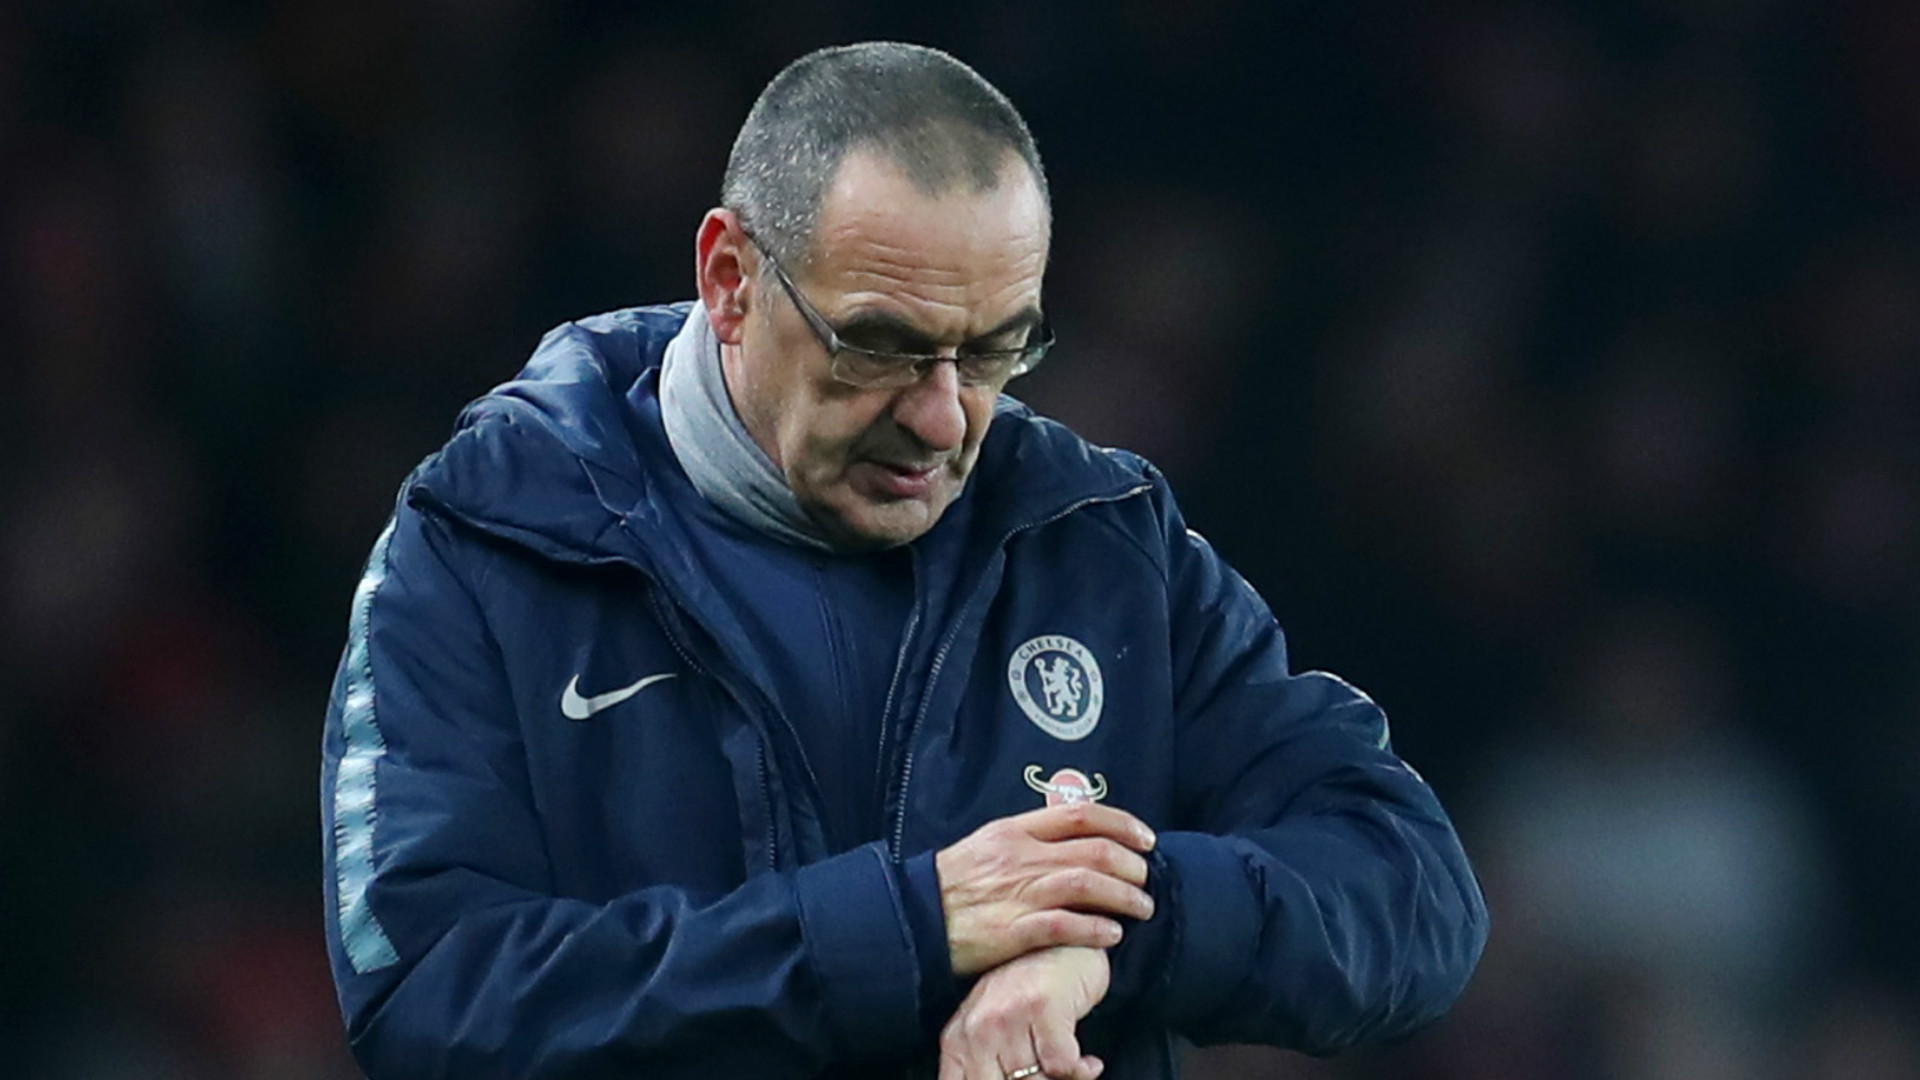 Official soon: Chelsea decide on risky new manager appointment as Maurizio Sarri nears sack and potential Serie A return - Bóng Đá